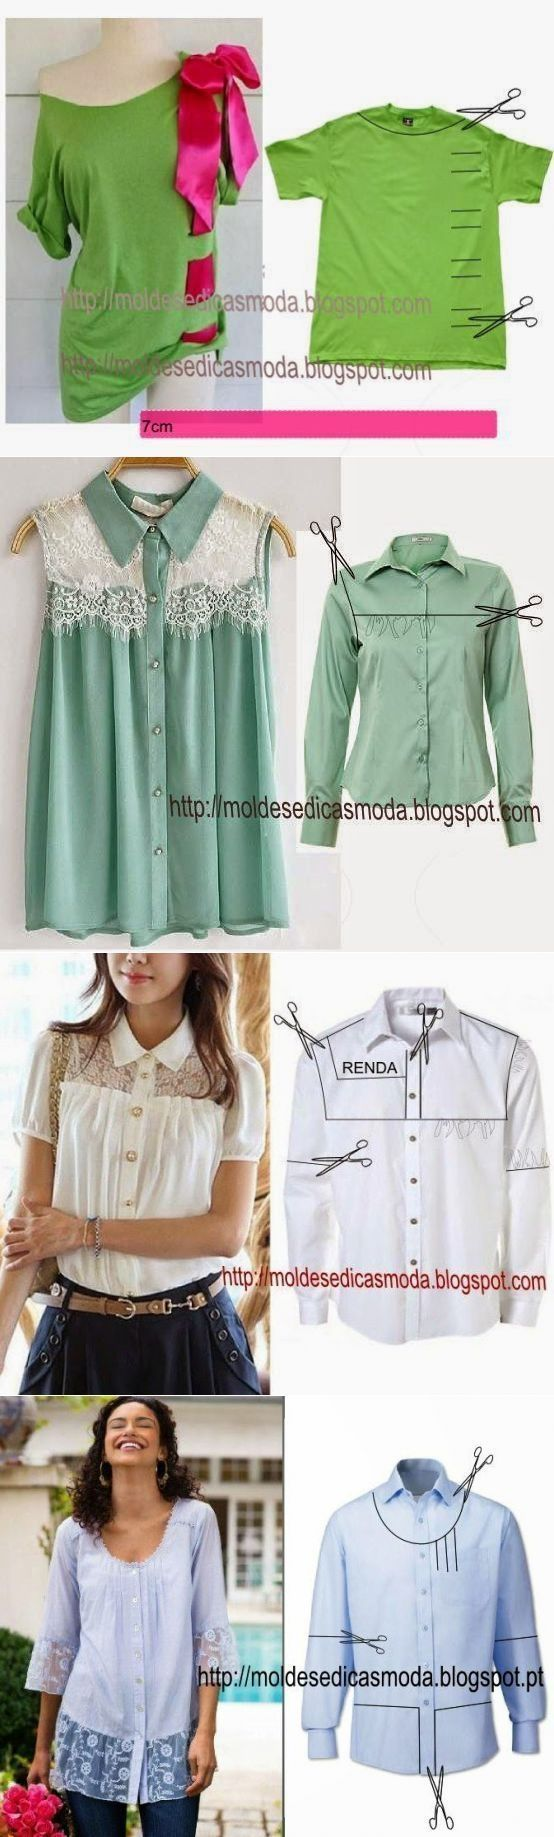 25 Best Ideas About Clothes Refashion On Pinterest Repurpose Clothing Refashioning Upcycled